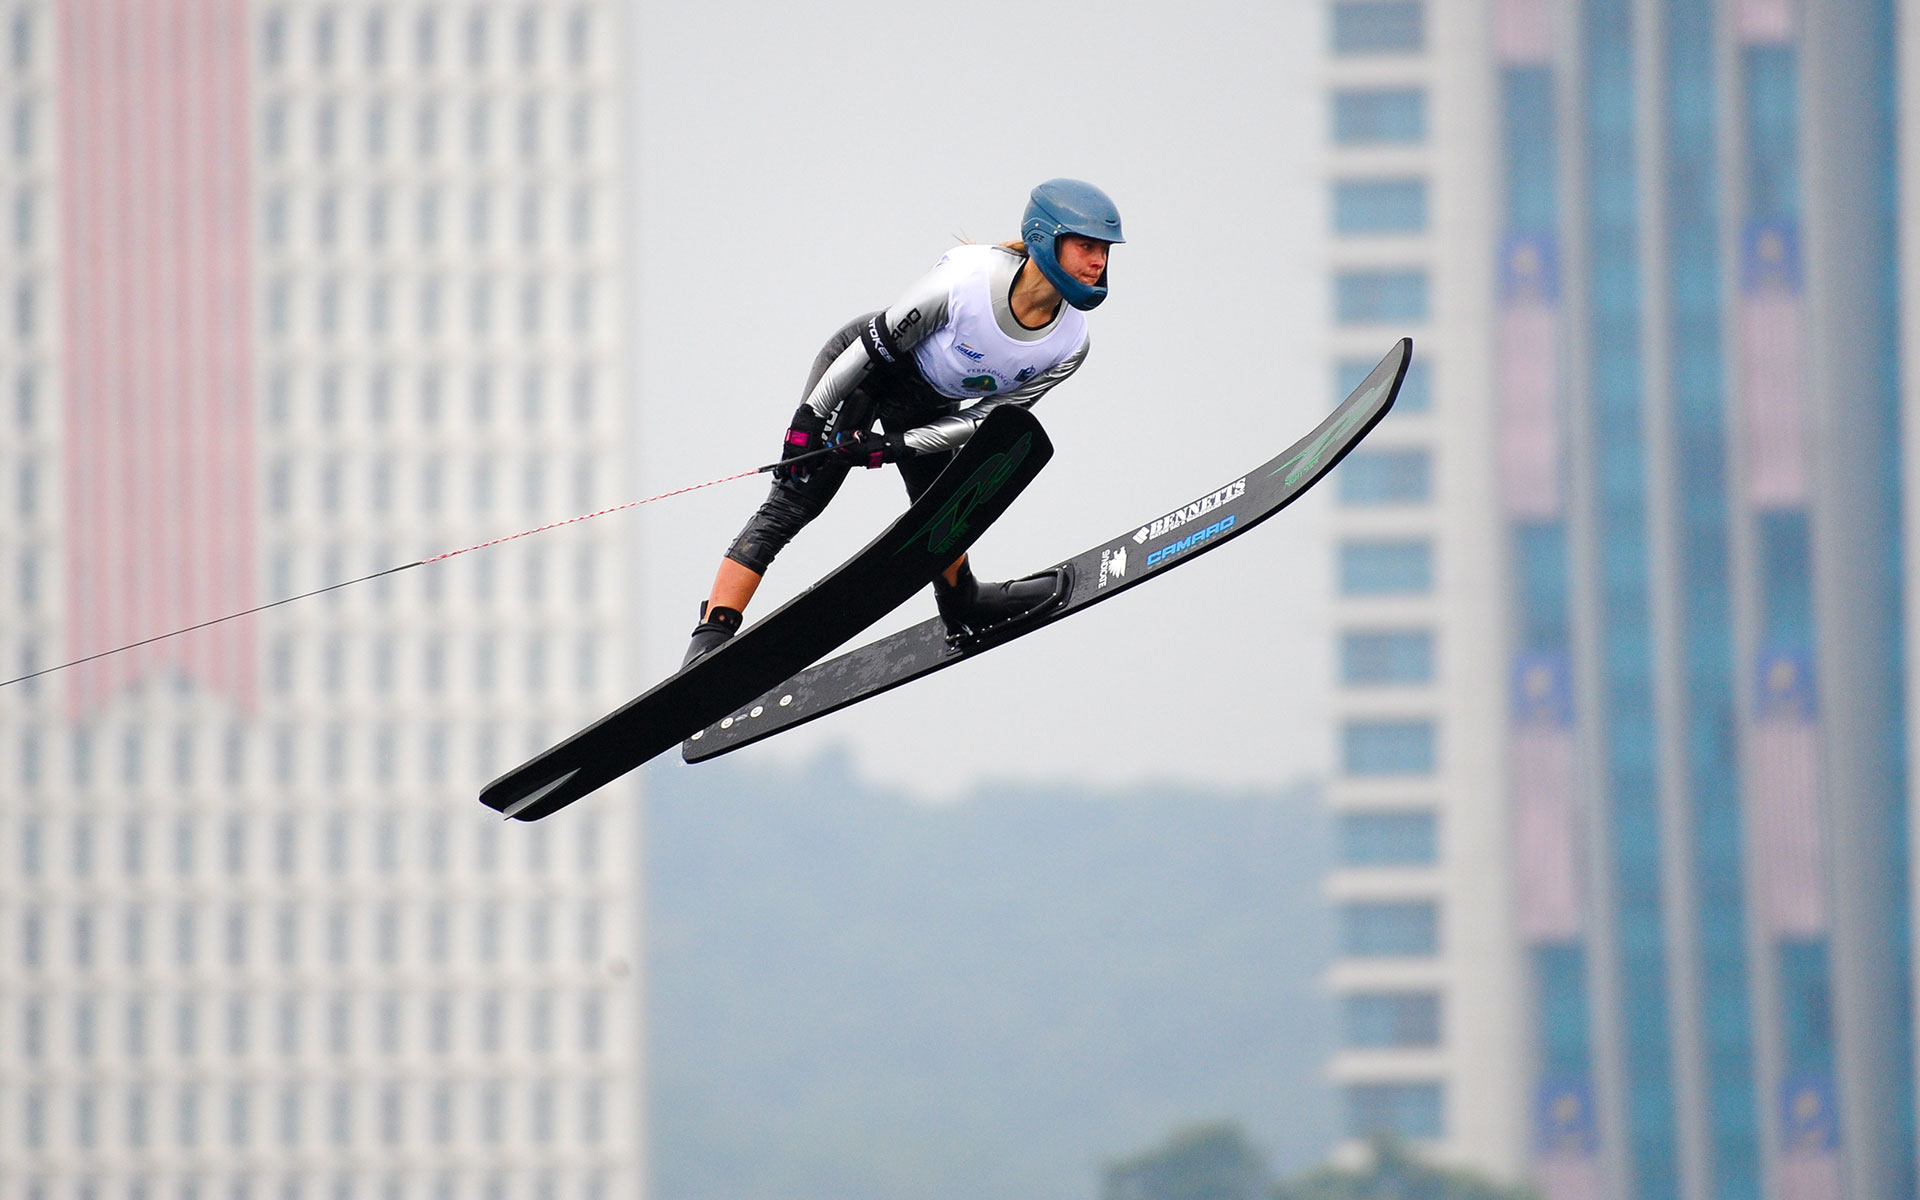 IWWF World Waterski Championships and IWWF European Wakeboard Championships provide taste of what to expect in Doha